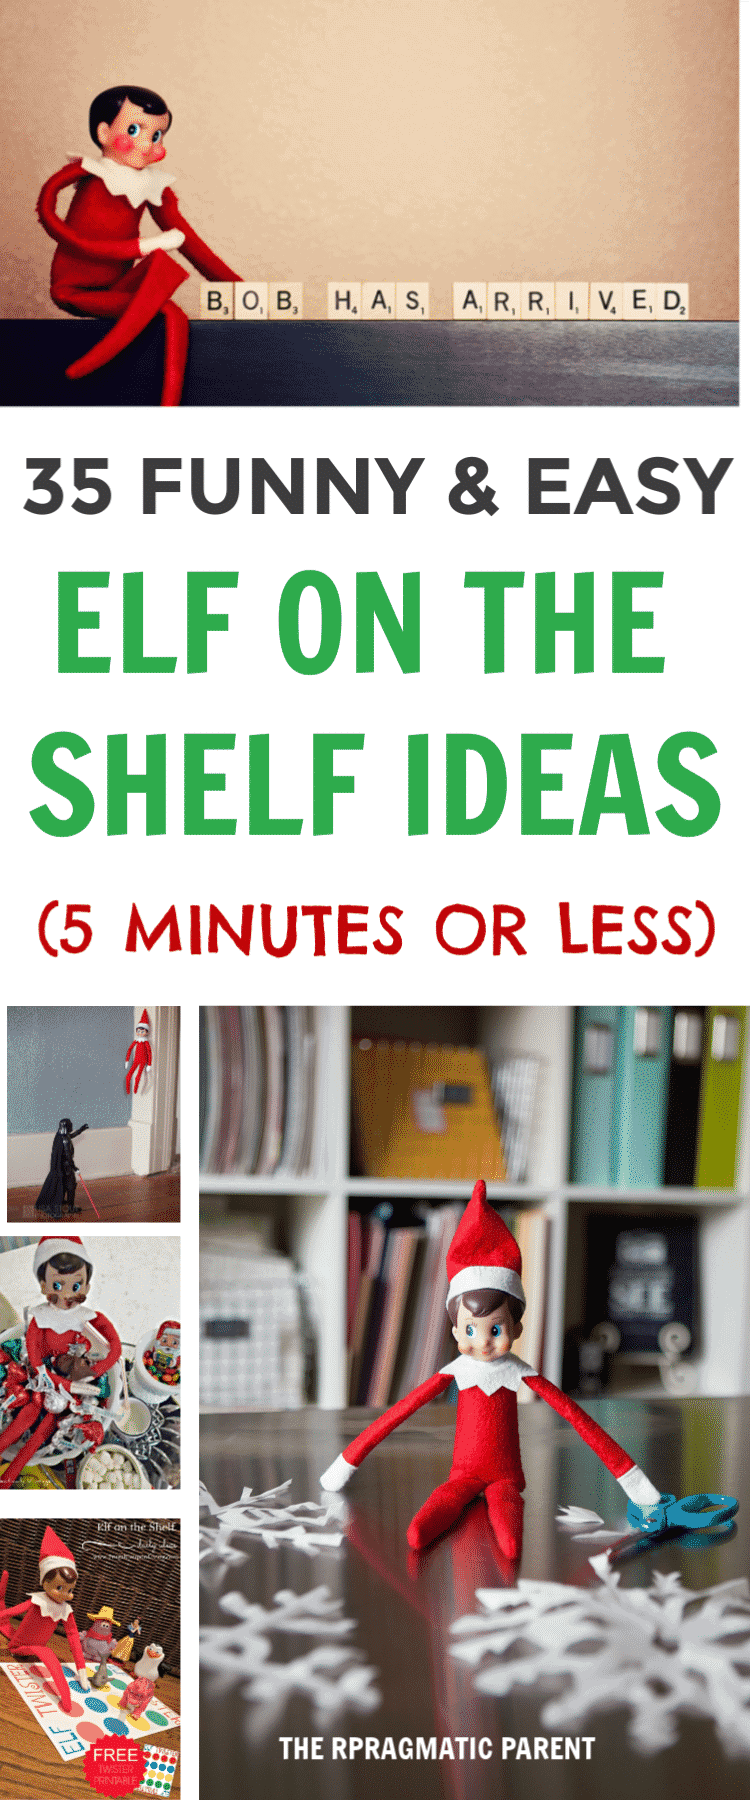 35 Easy Elf on the Shelf Ideas you can pull together in less than 5 minutes. Easy and funny Elf Ideas your kids will love and talk about to their friends.  #elfontheshelf #easyelfontheshelf #easyelfideas #elfontheshelfideas #holidaytraditions